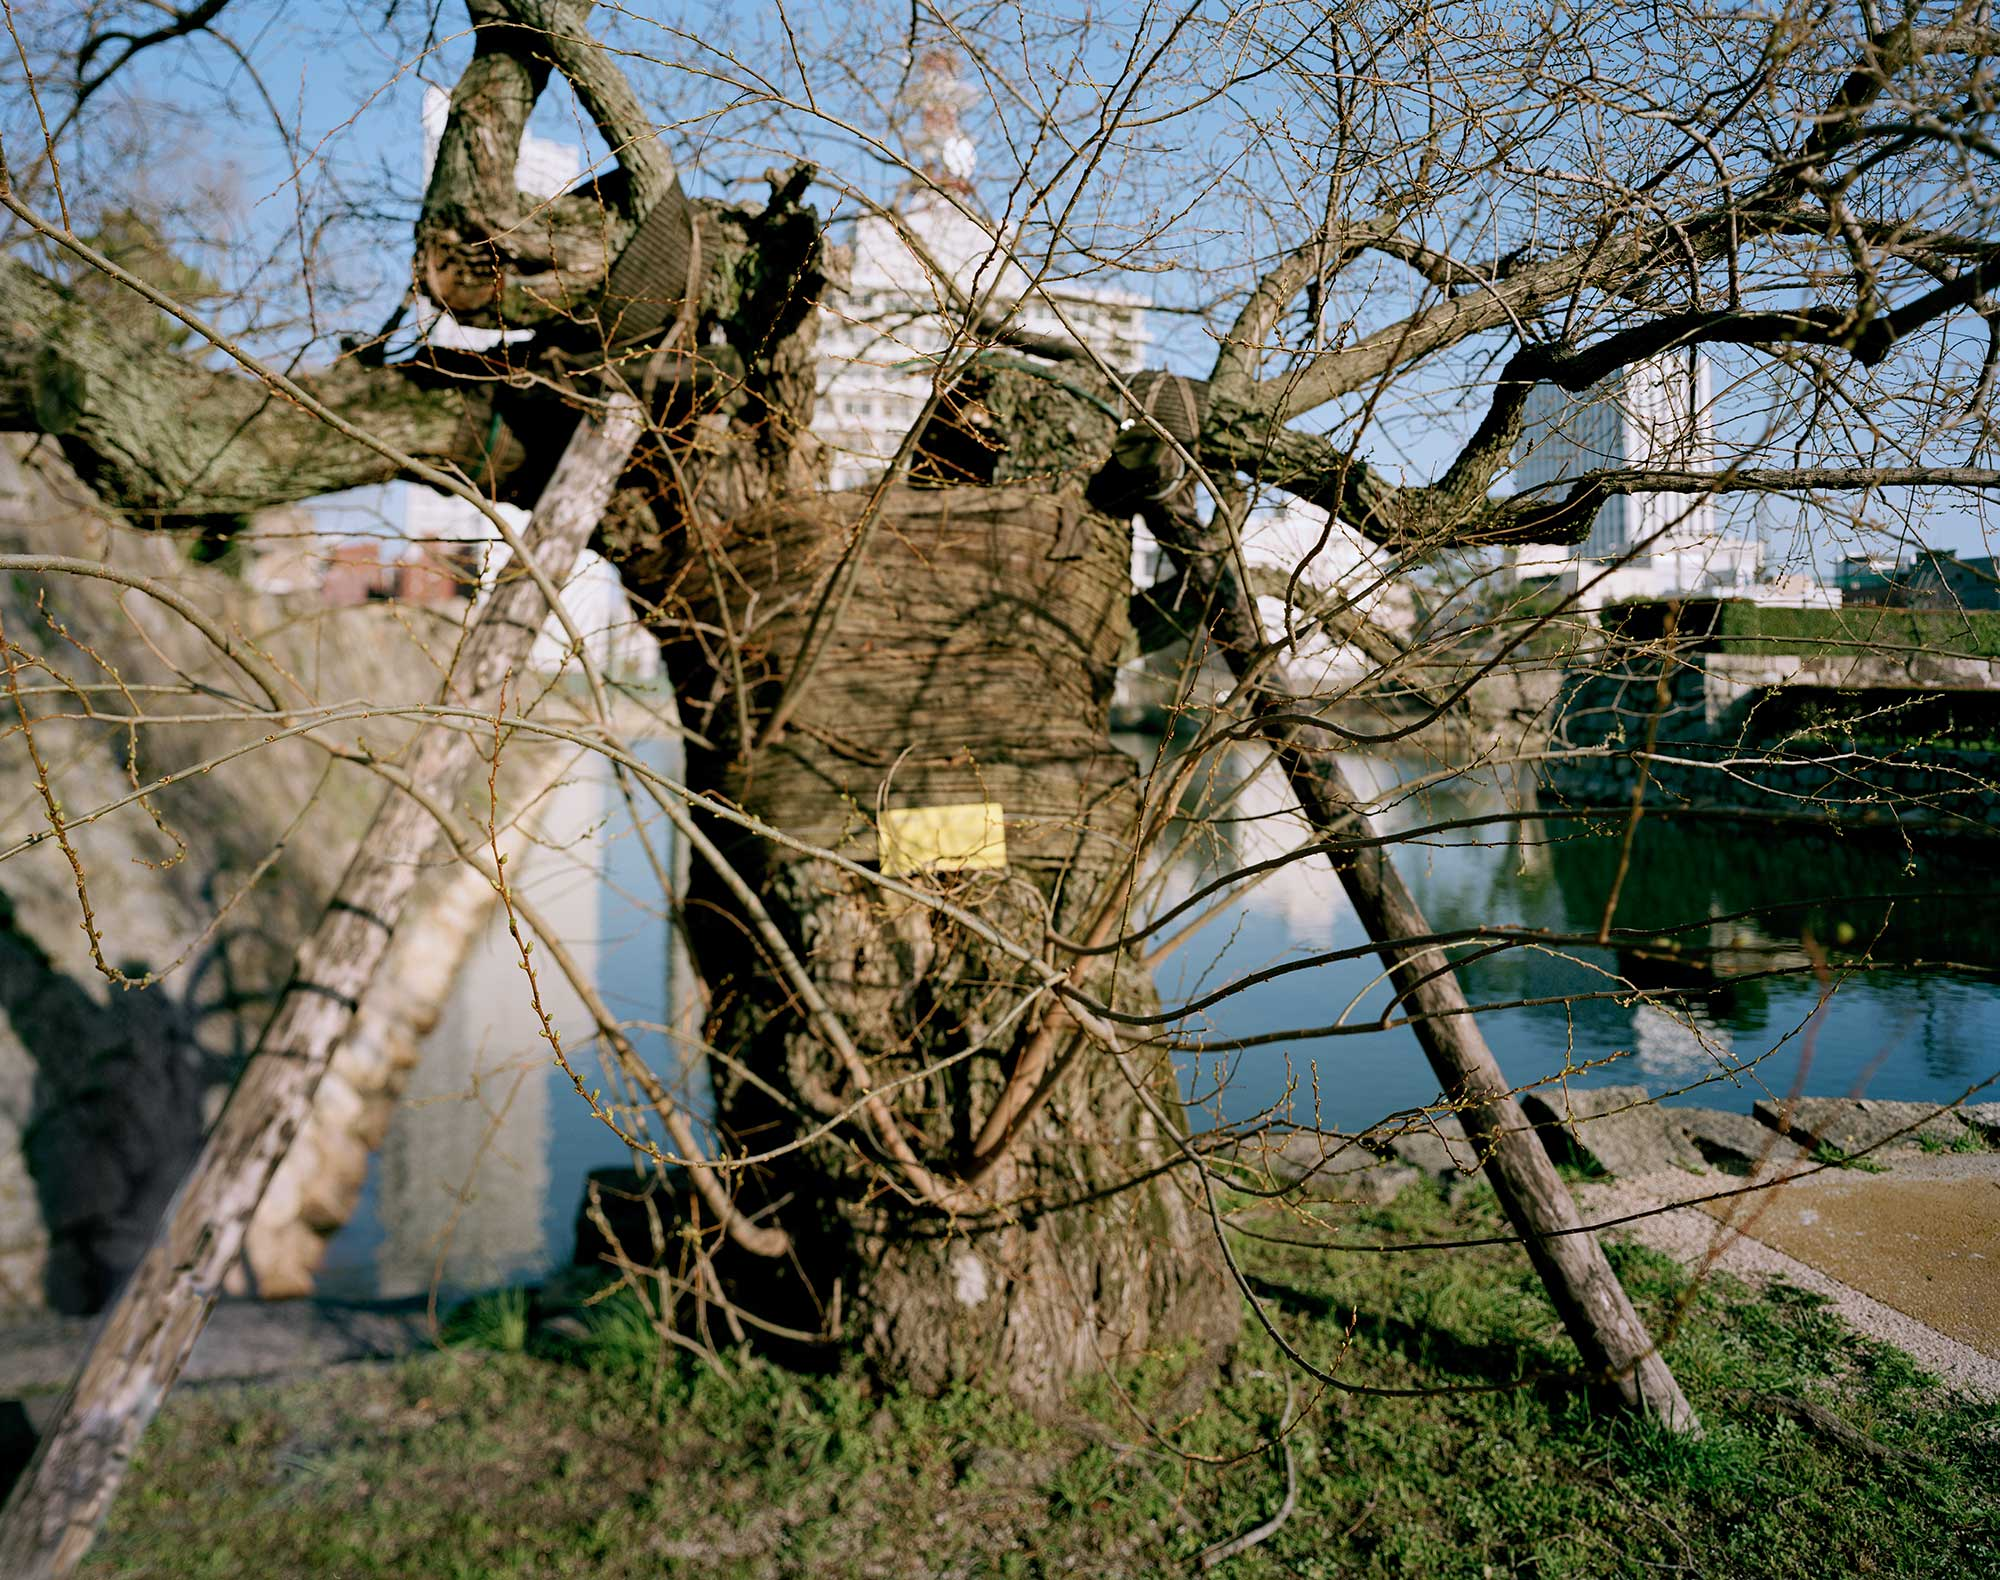 A-bombed Pussy Willow Tree Near Hiroshima Castle, 770 meters from the hypocenter, 30 x 40, Chromogenic Print, 2013, Chromogenic print, 30 x 40 inch.